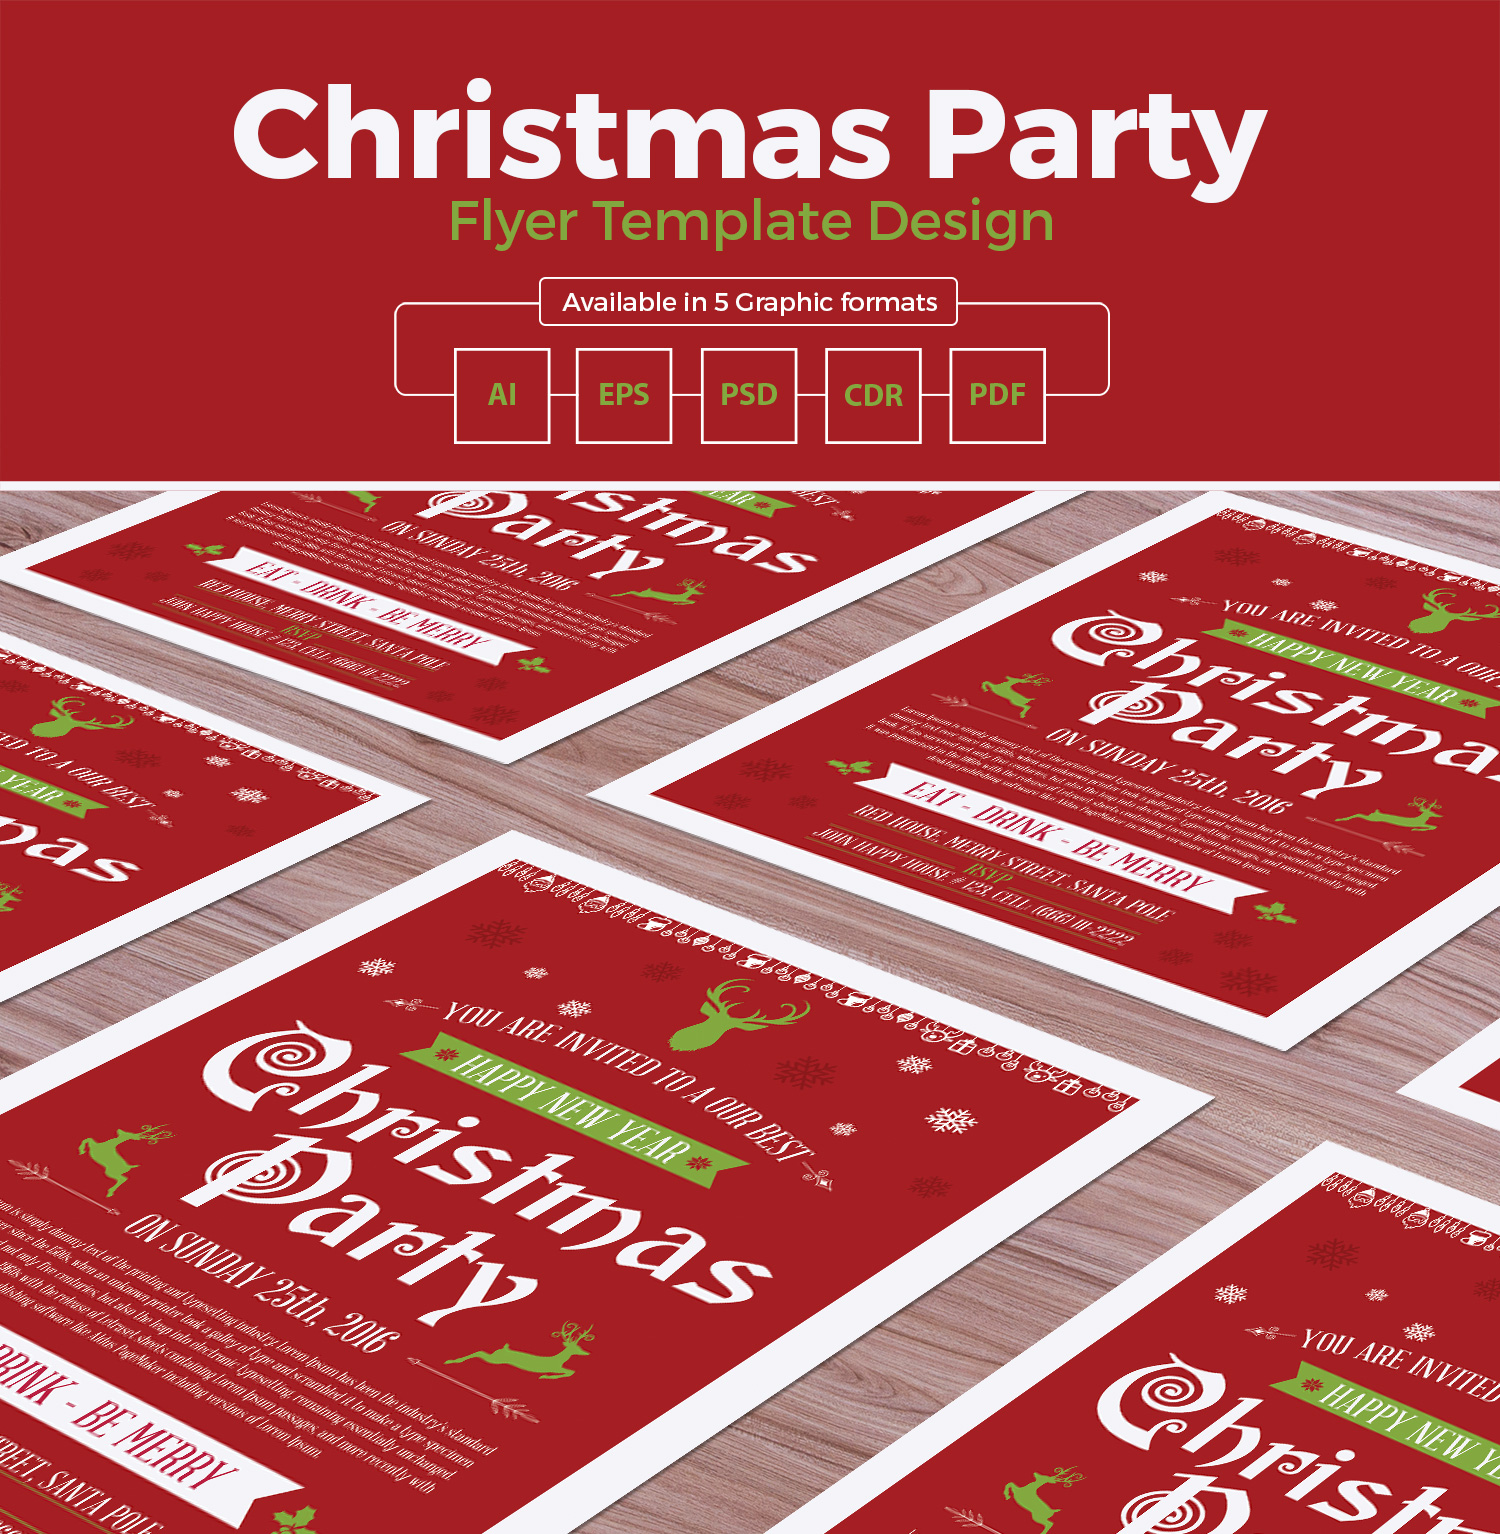 christmas-party-flyer-template-design